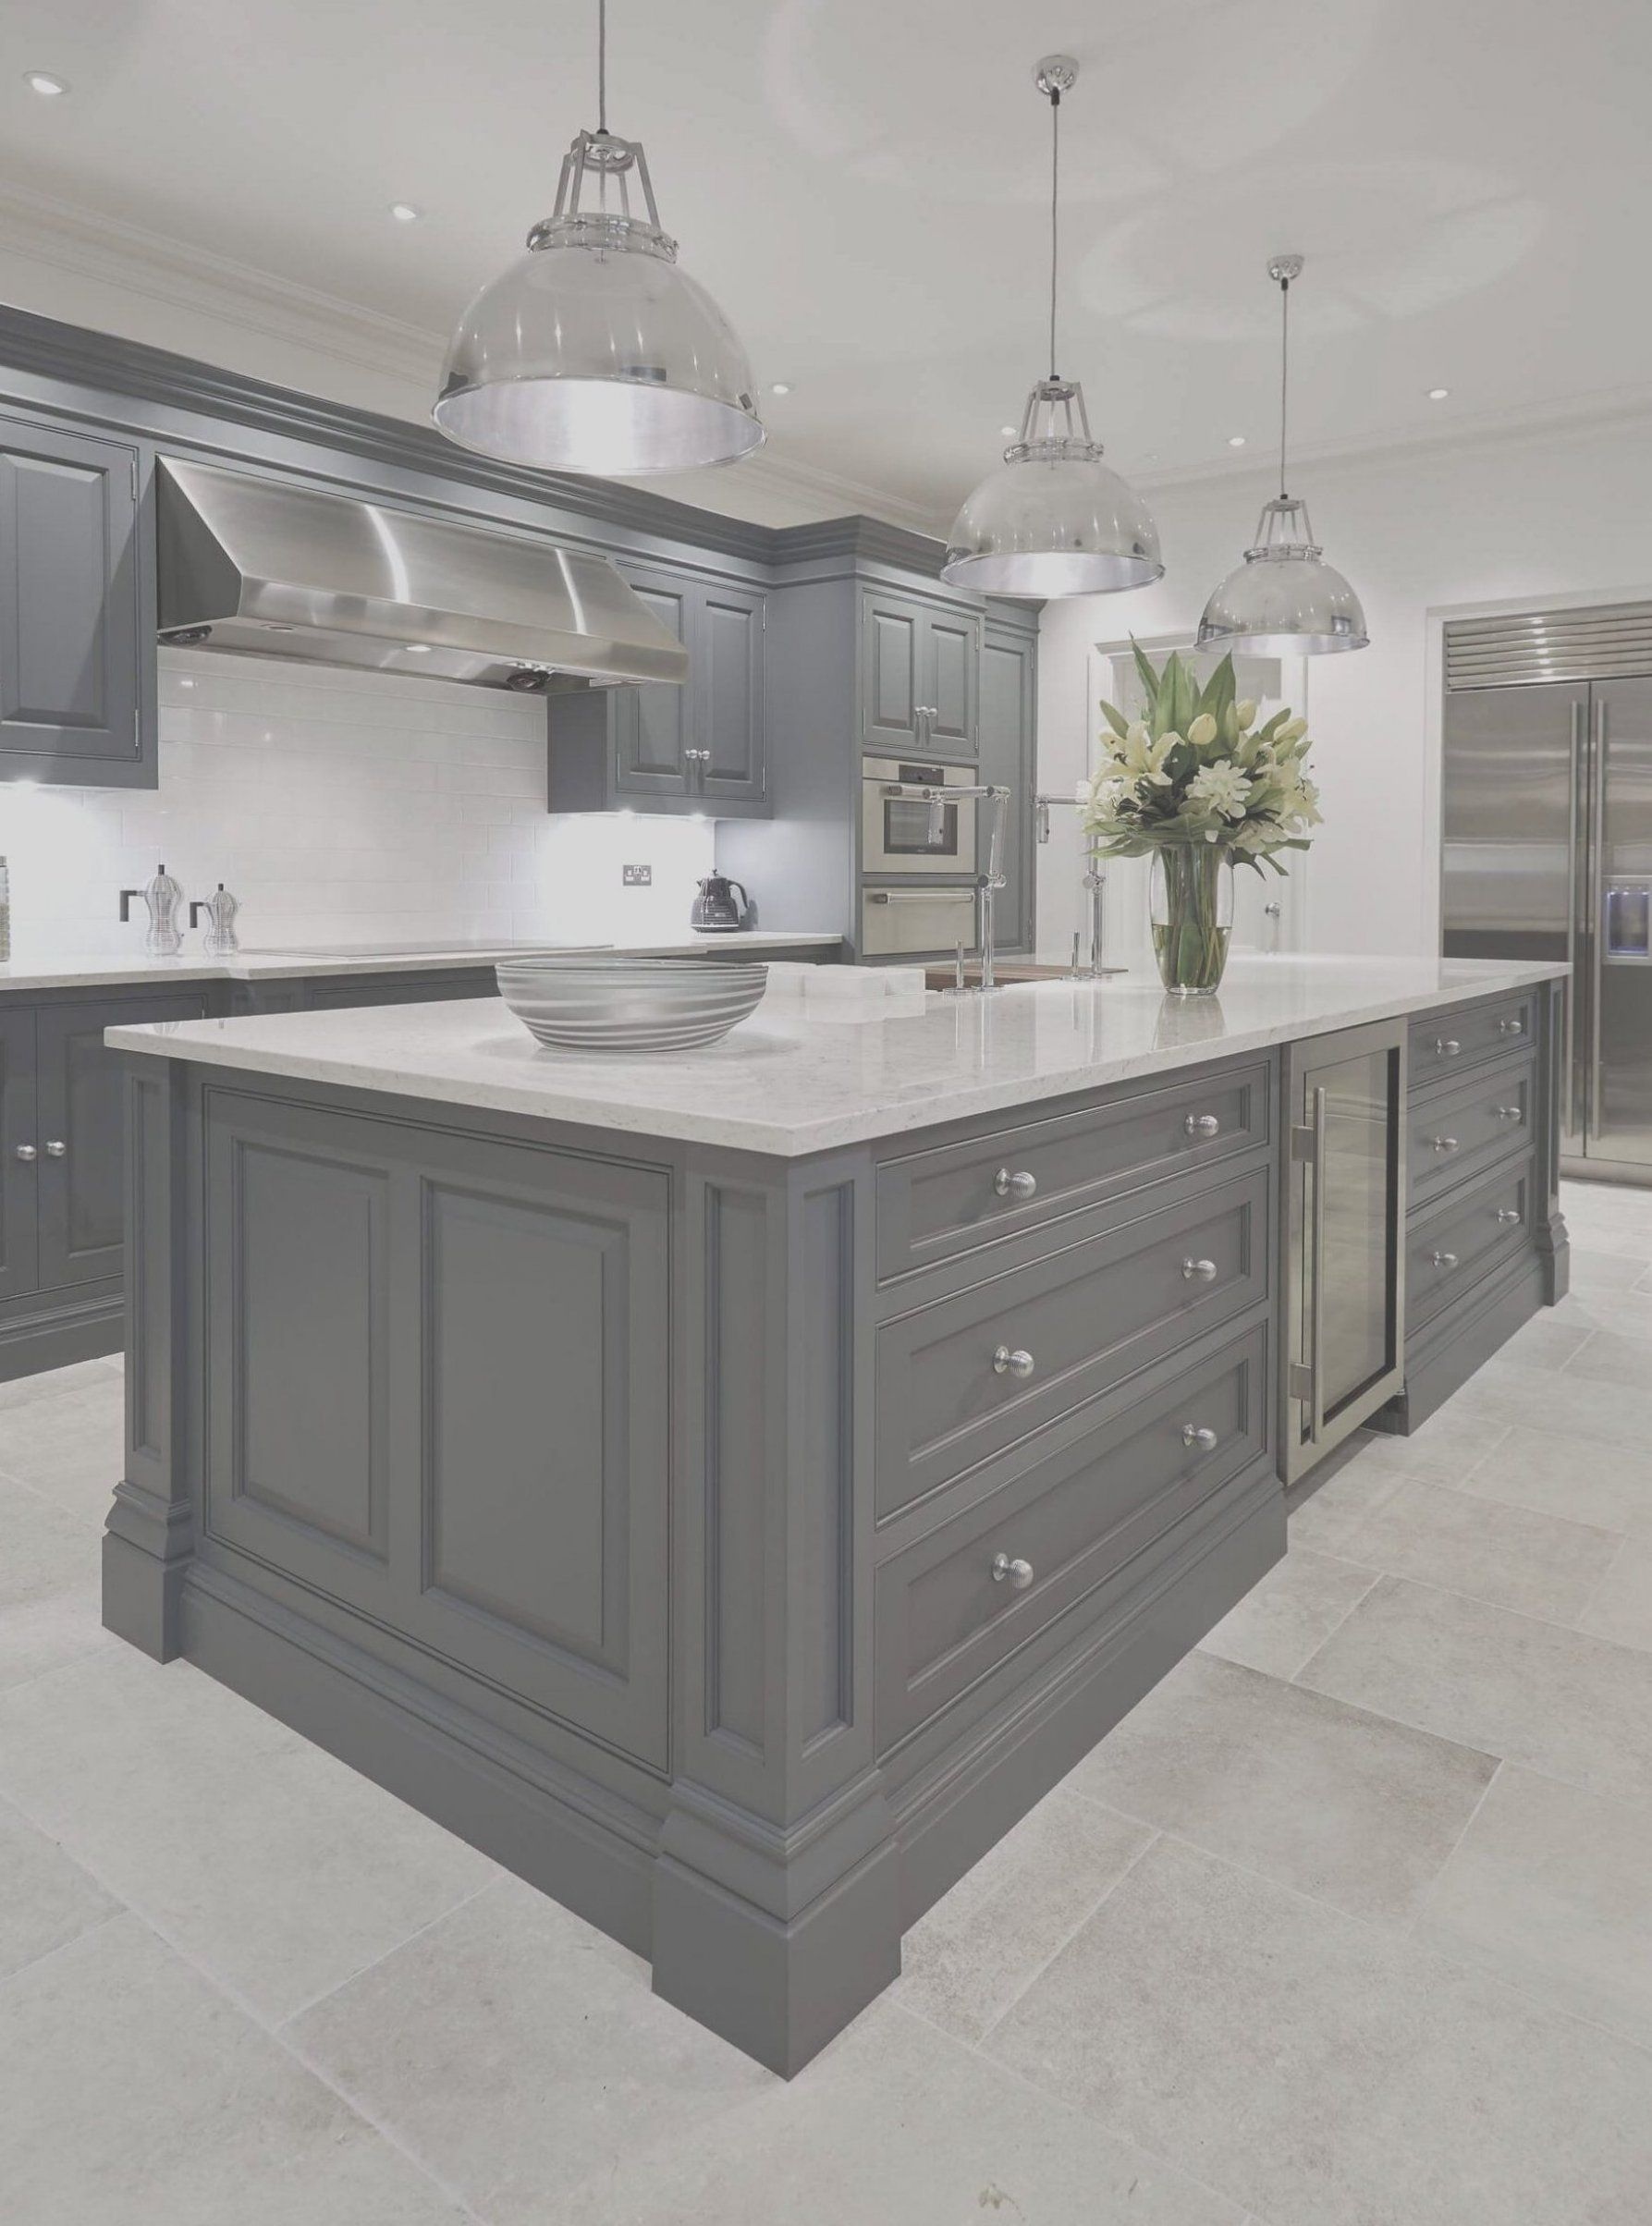 Kitchen Design Grey Grey Wash Kitchen Cabinets Grey Modern Kitchen Design Grey Kitchen In 2020 Modern Kitchen Design Grey Grey Kitchen Designs Kitchen Remodel Small